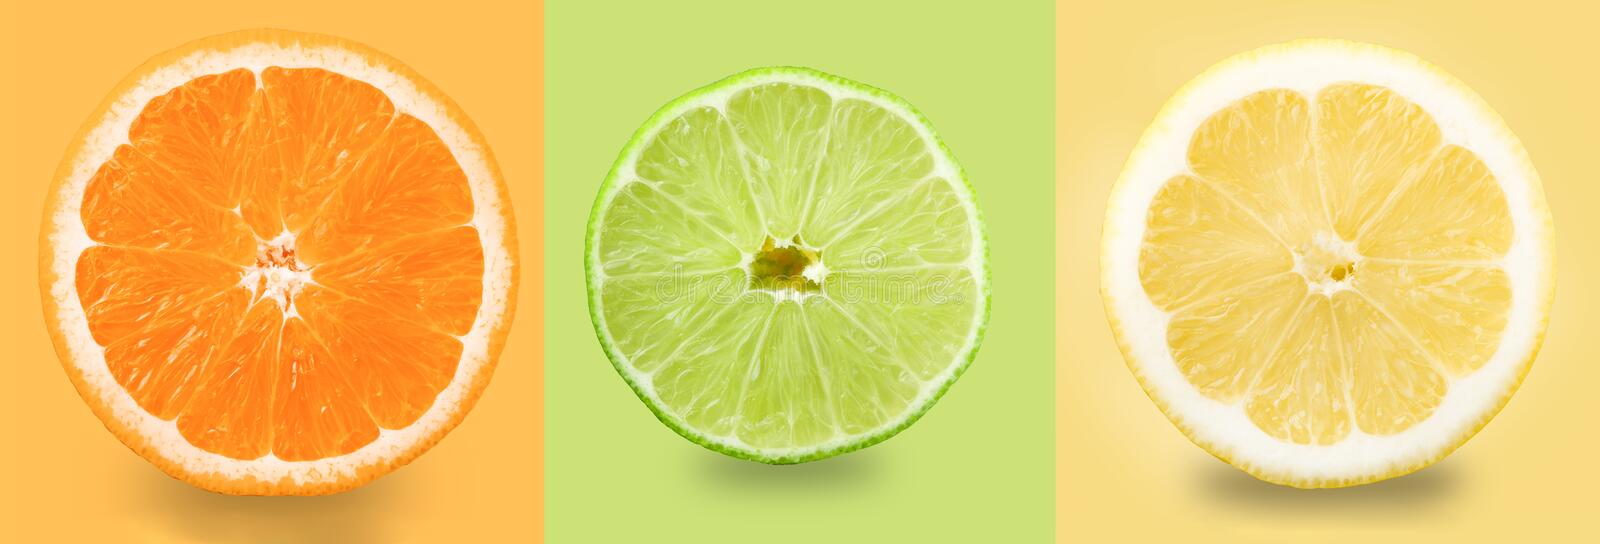 Citrus fruit. Orange, lemon, lime. Slices isolated on a colored background. Collection royalty free stock photography